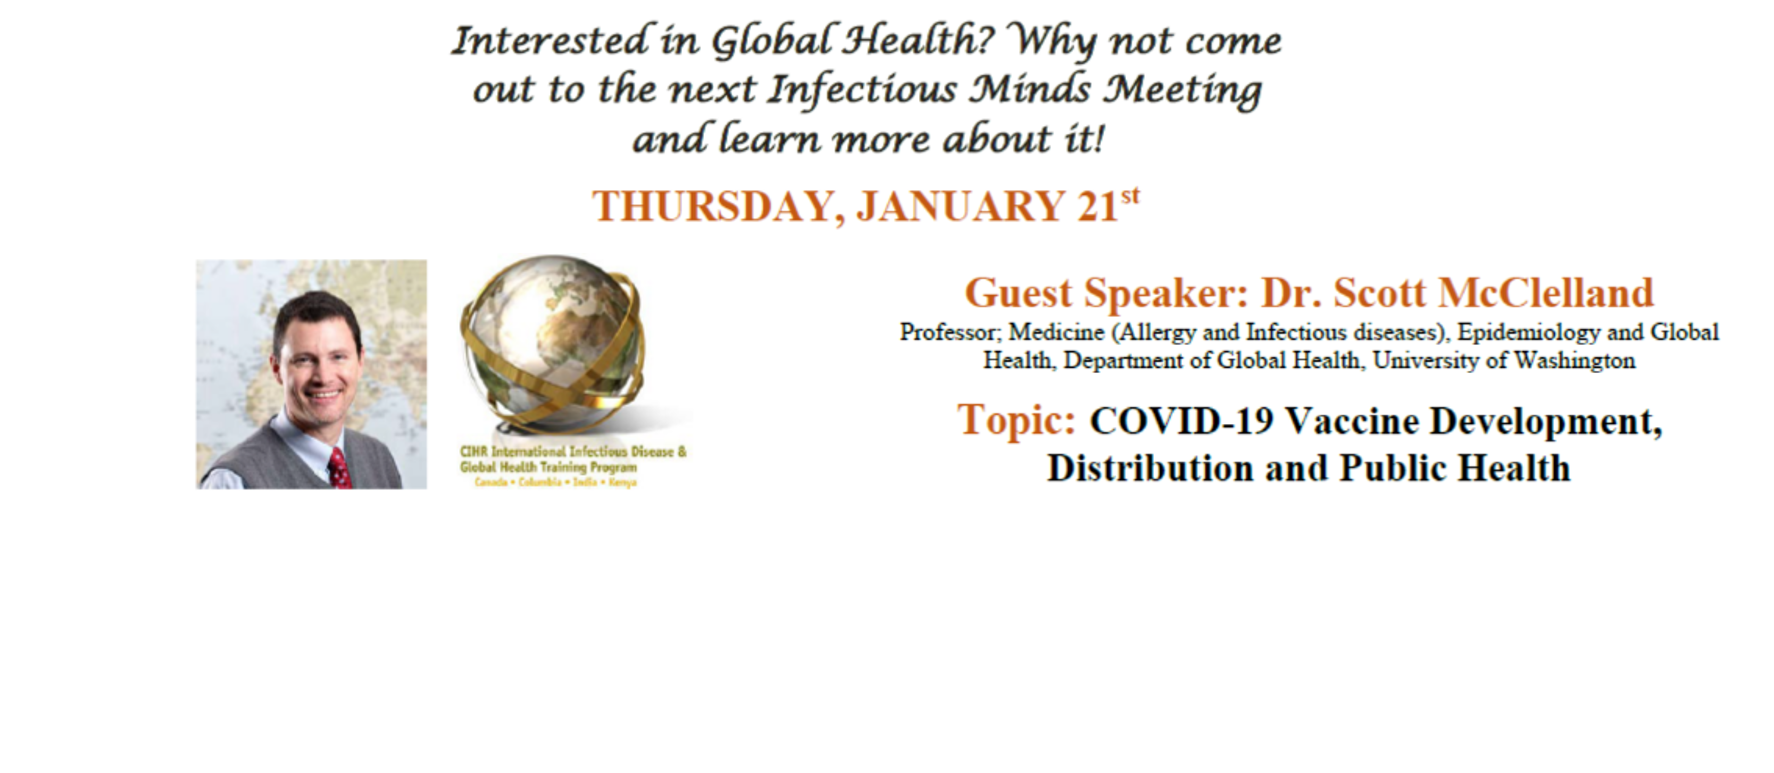 IID&GHTP - Jan 21st - Infectious Minds